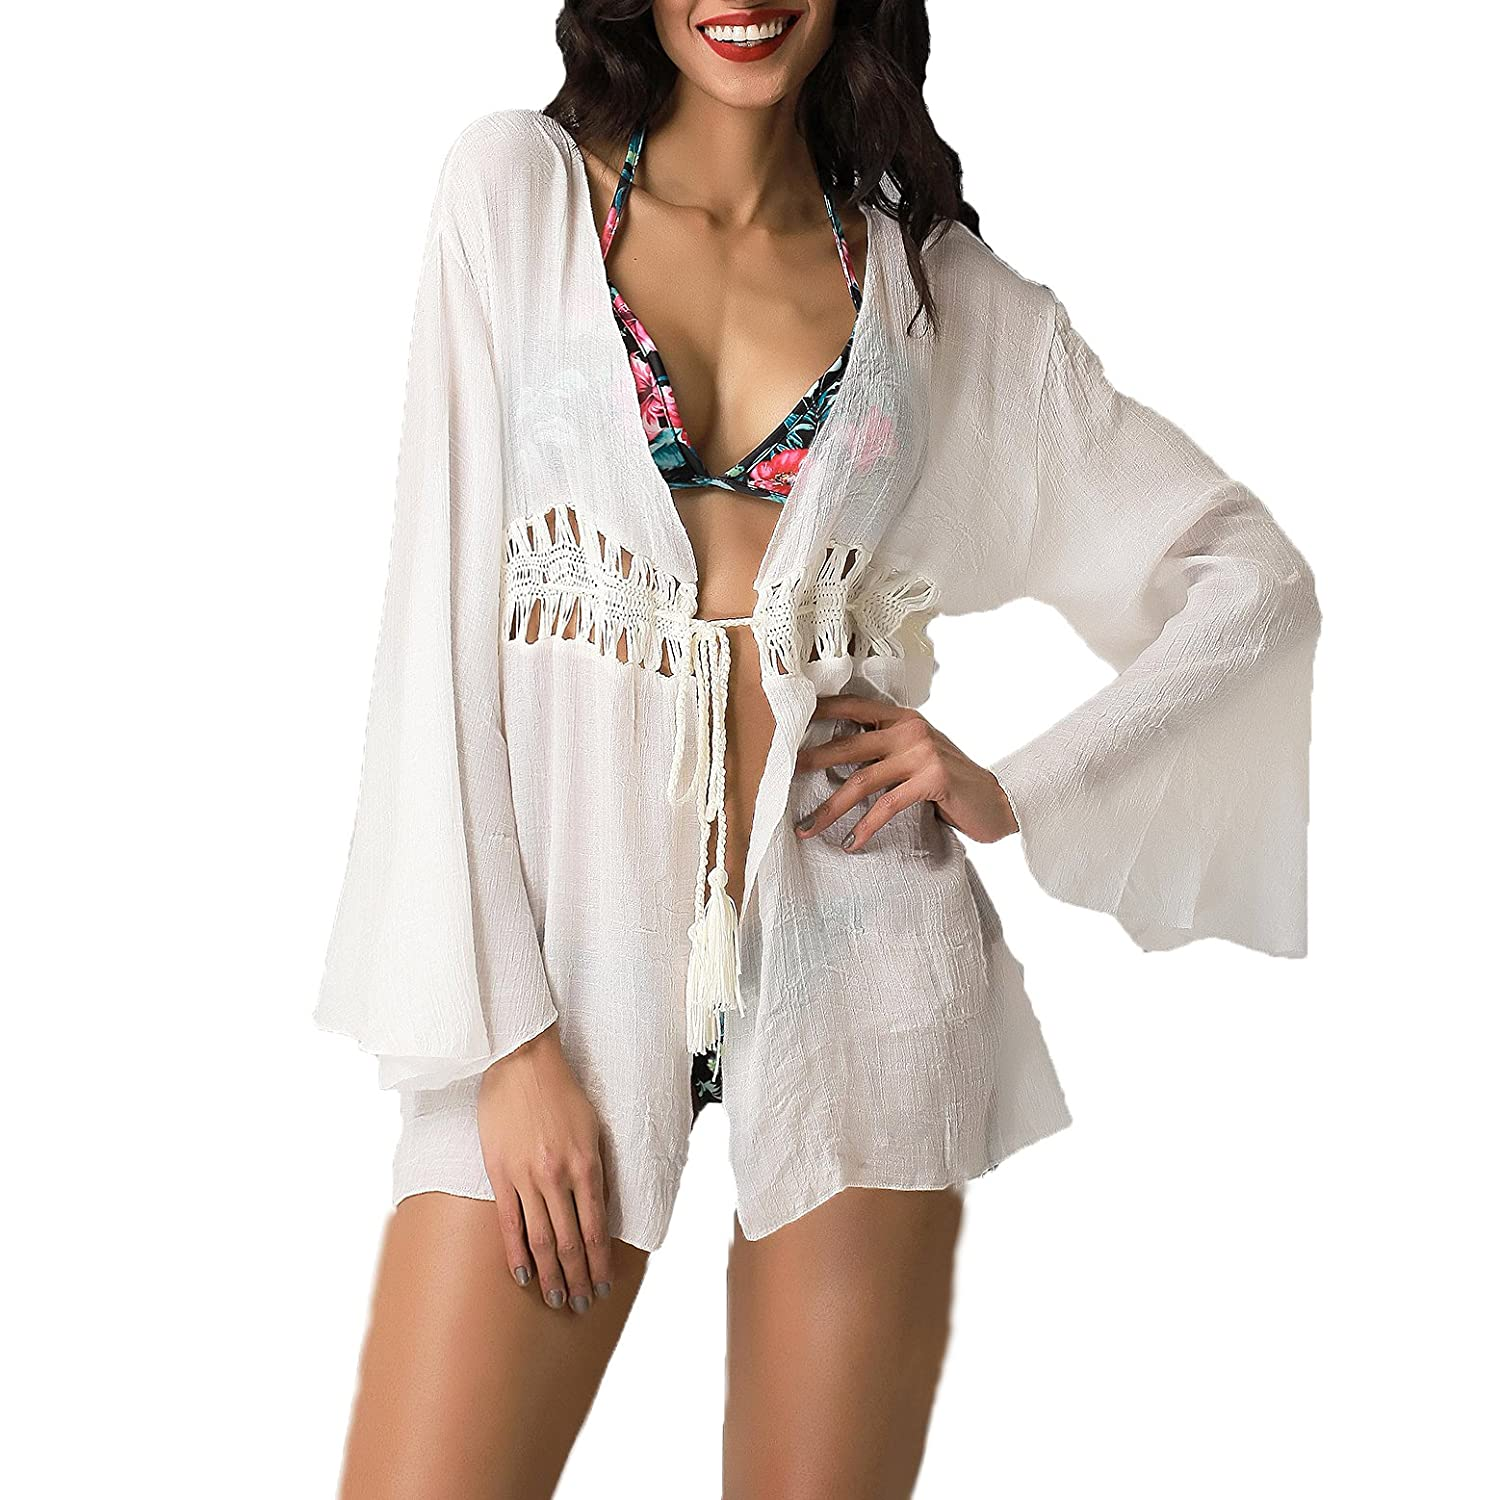 c1d6906a97 Blue Island Women's Tie Front Crochet Tunic Swim Cover, White at Amazon  Women's Clothing store: